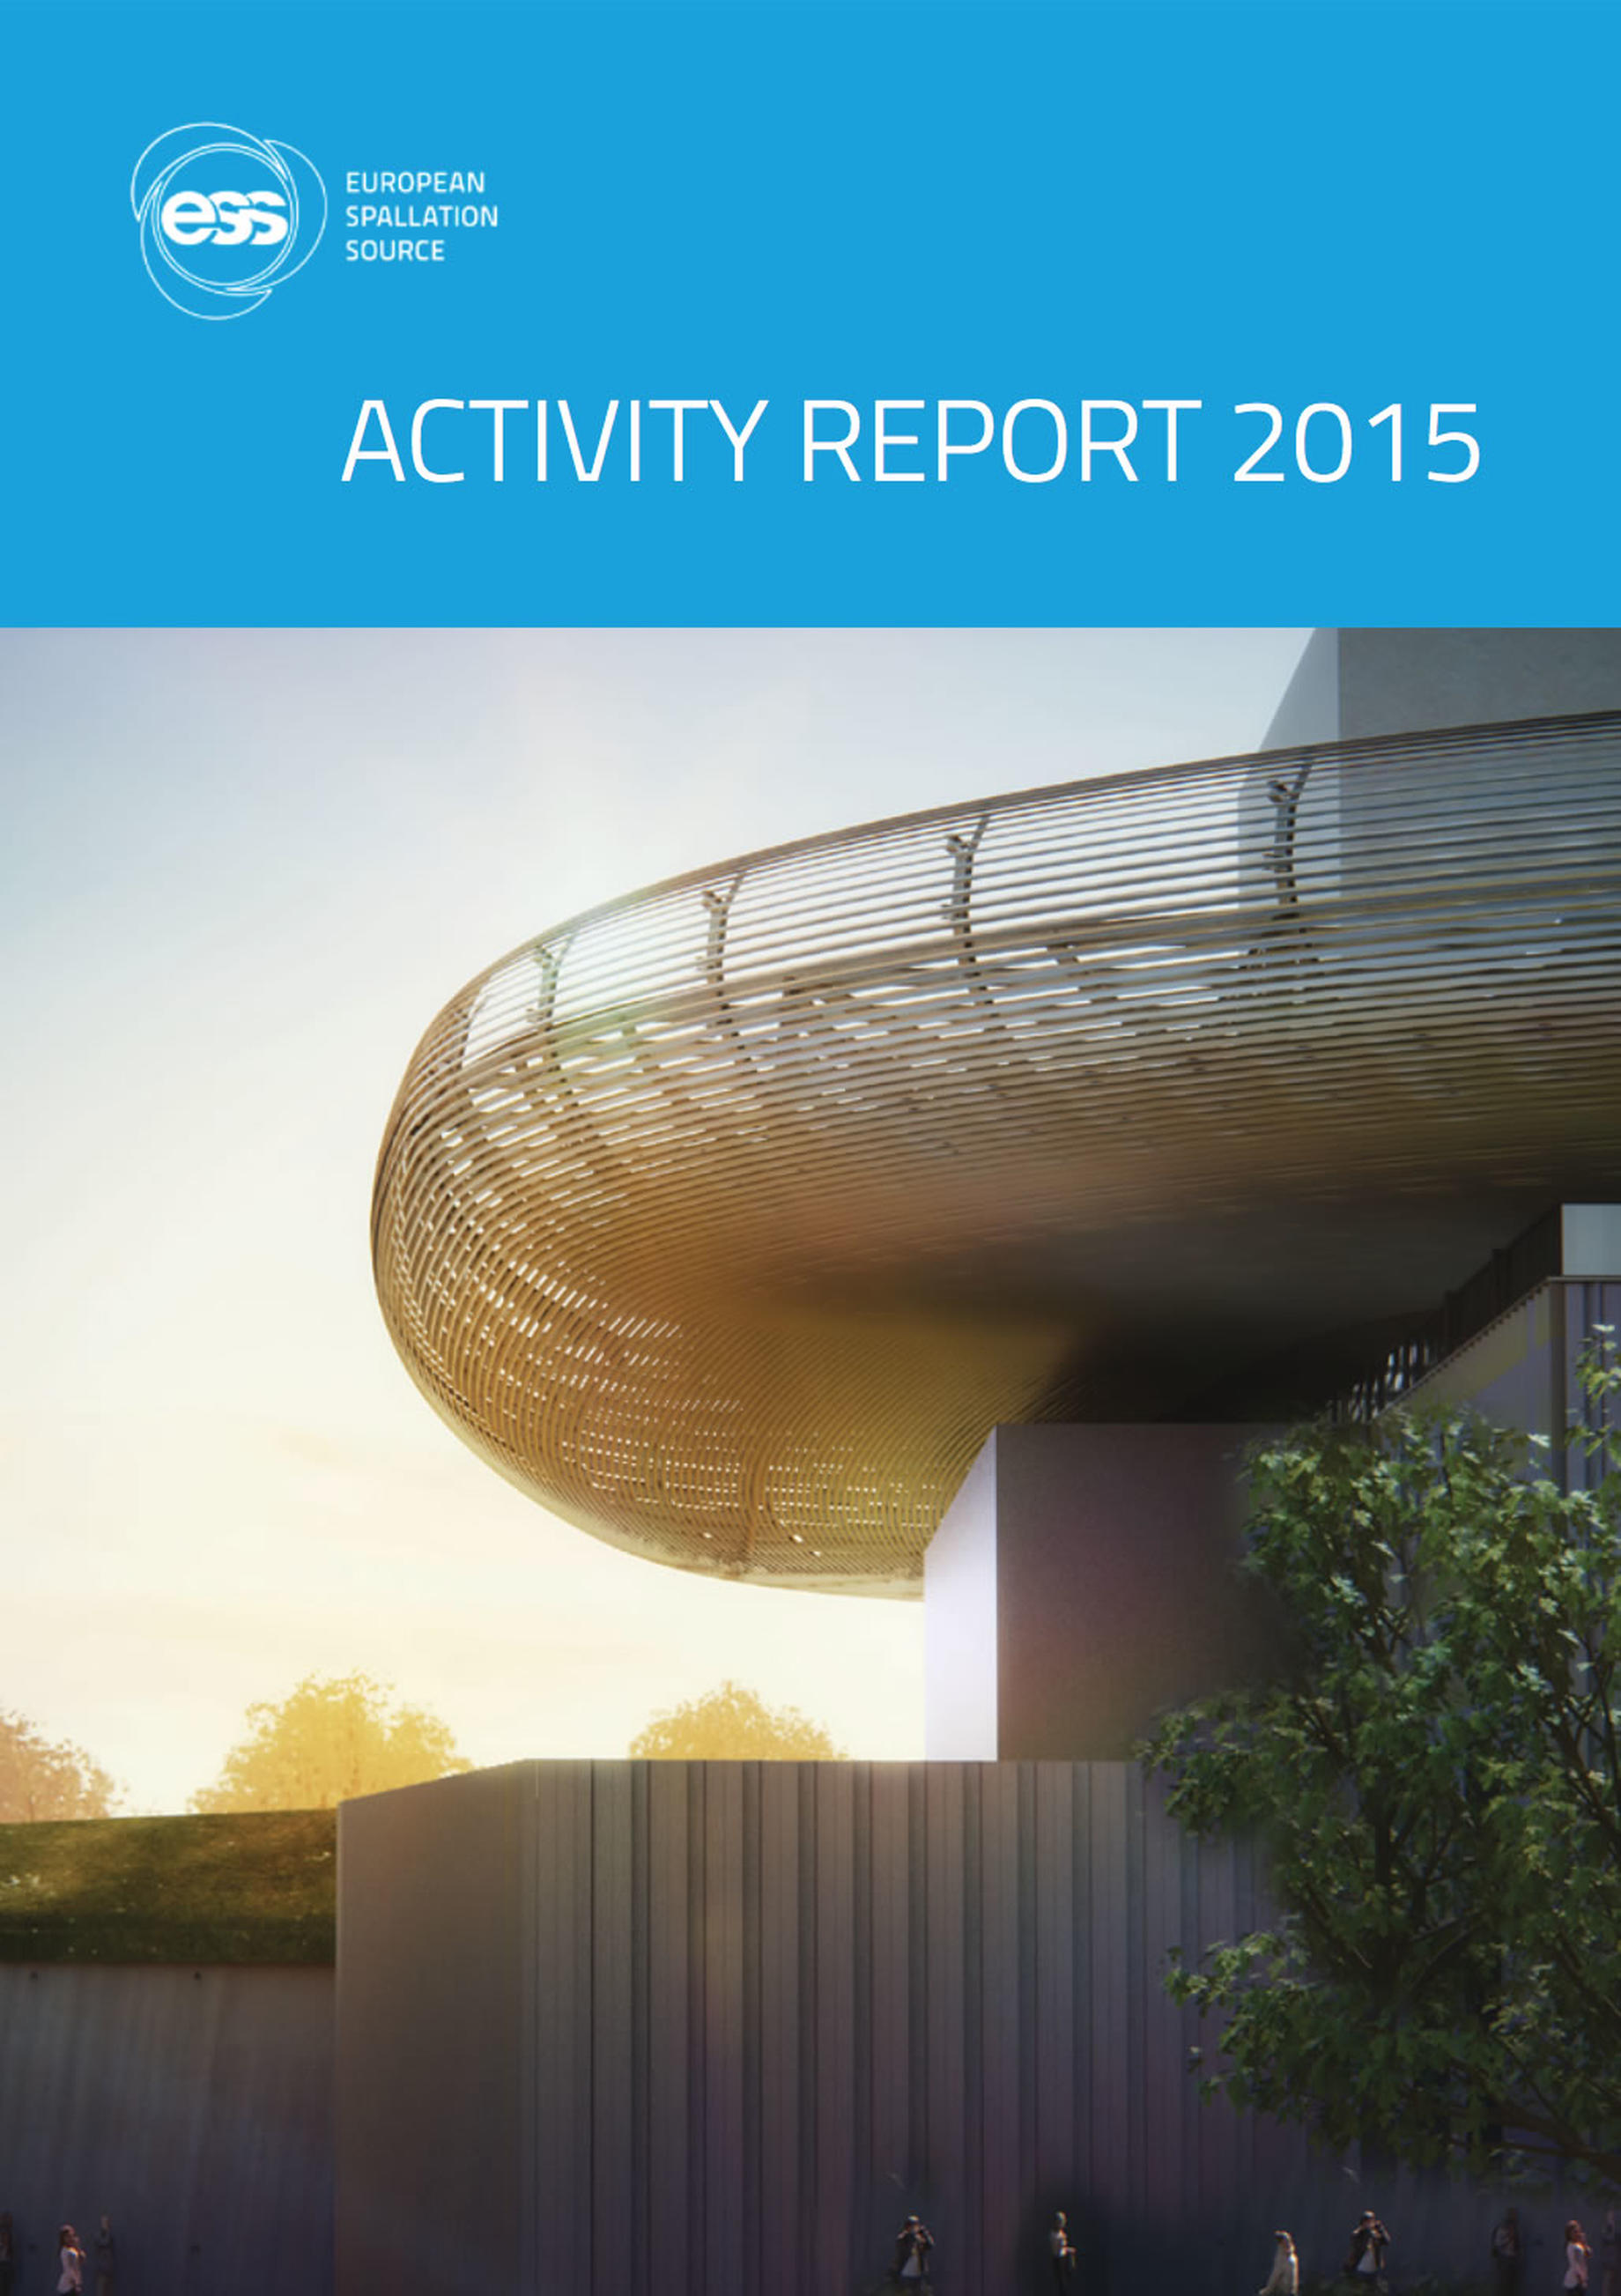 ActivityReport2015_cover.jpg